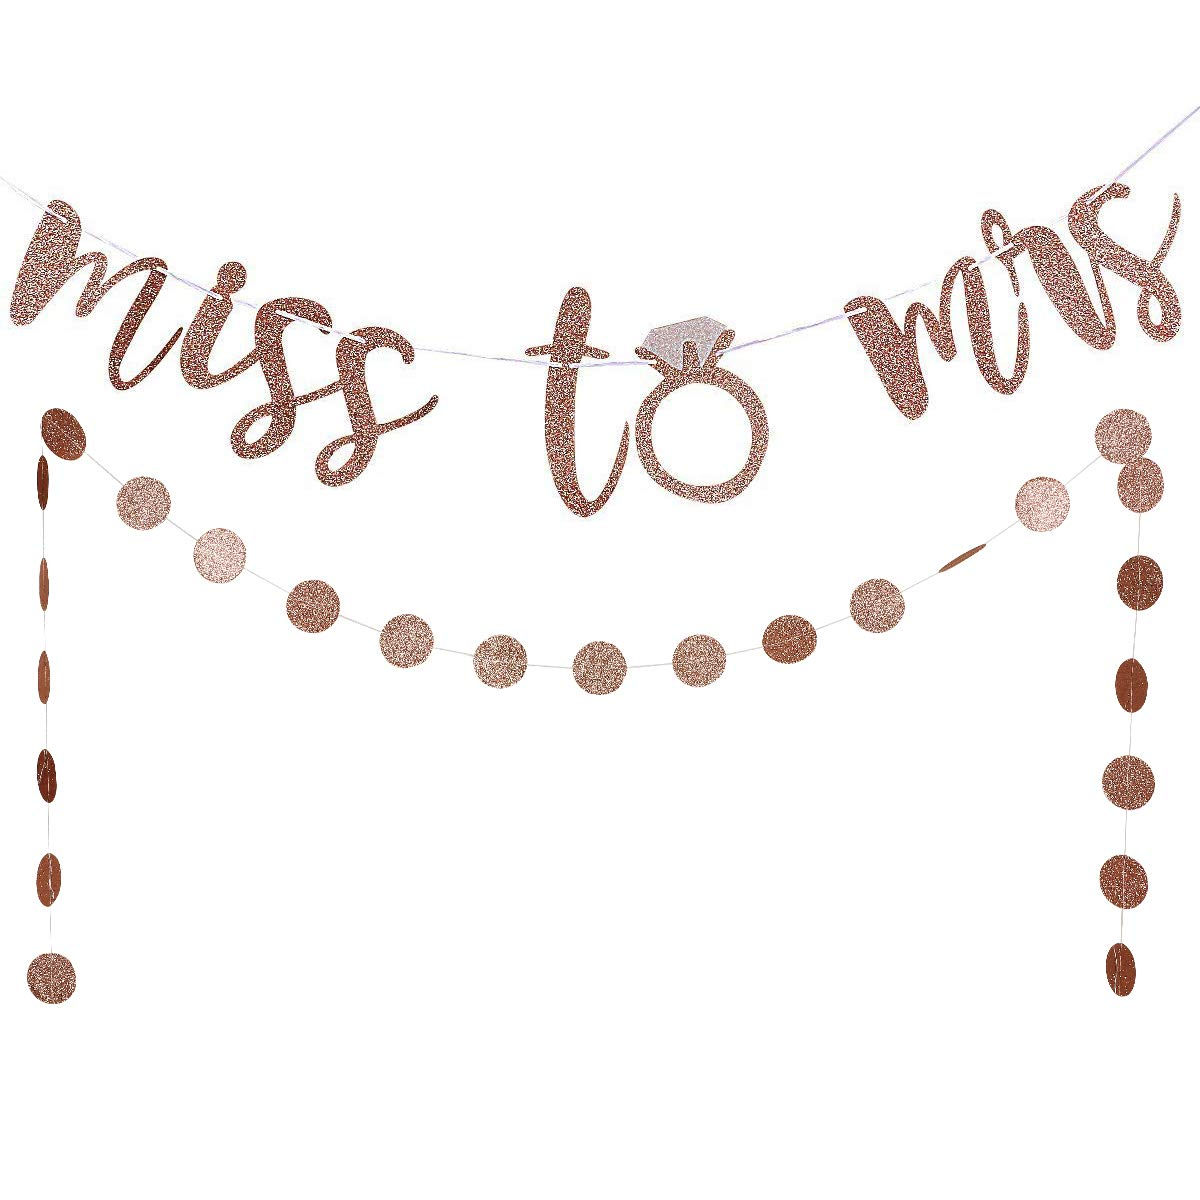 Rose Gold Glittery Miss to Mrs Banner and Rose Gold Glittery Circle Dots Garland(25pcs Circle Dots) -Bachelorette Wedding Engagement Party Decoration Supplies